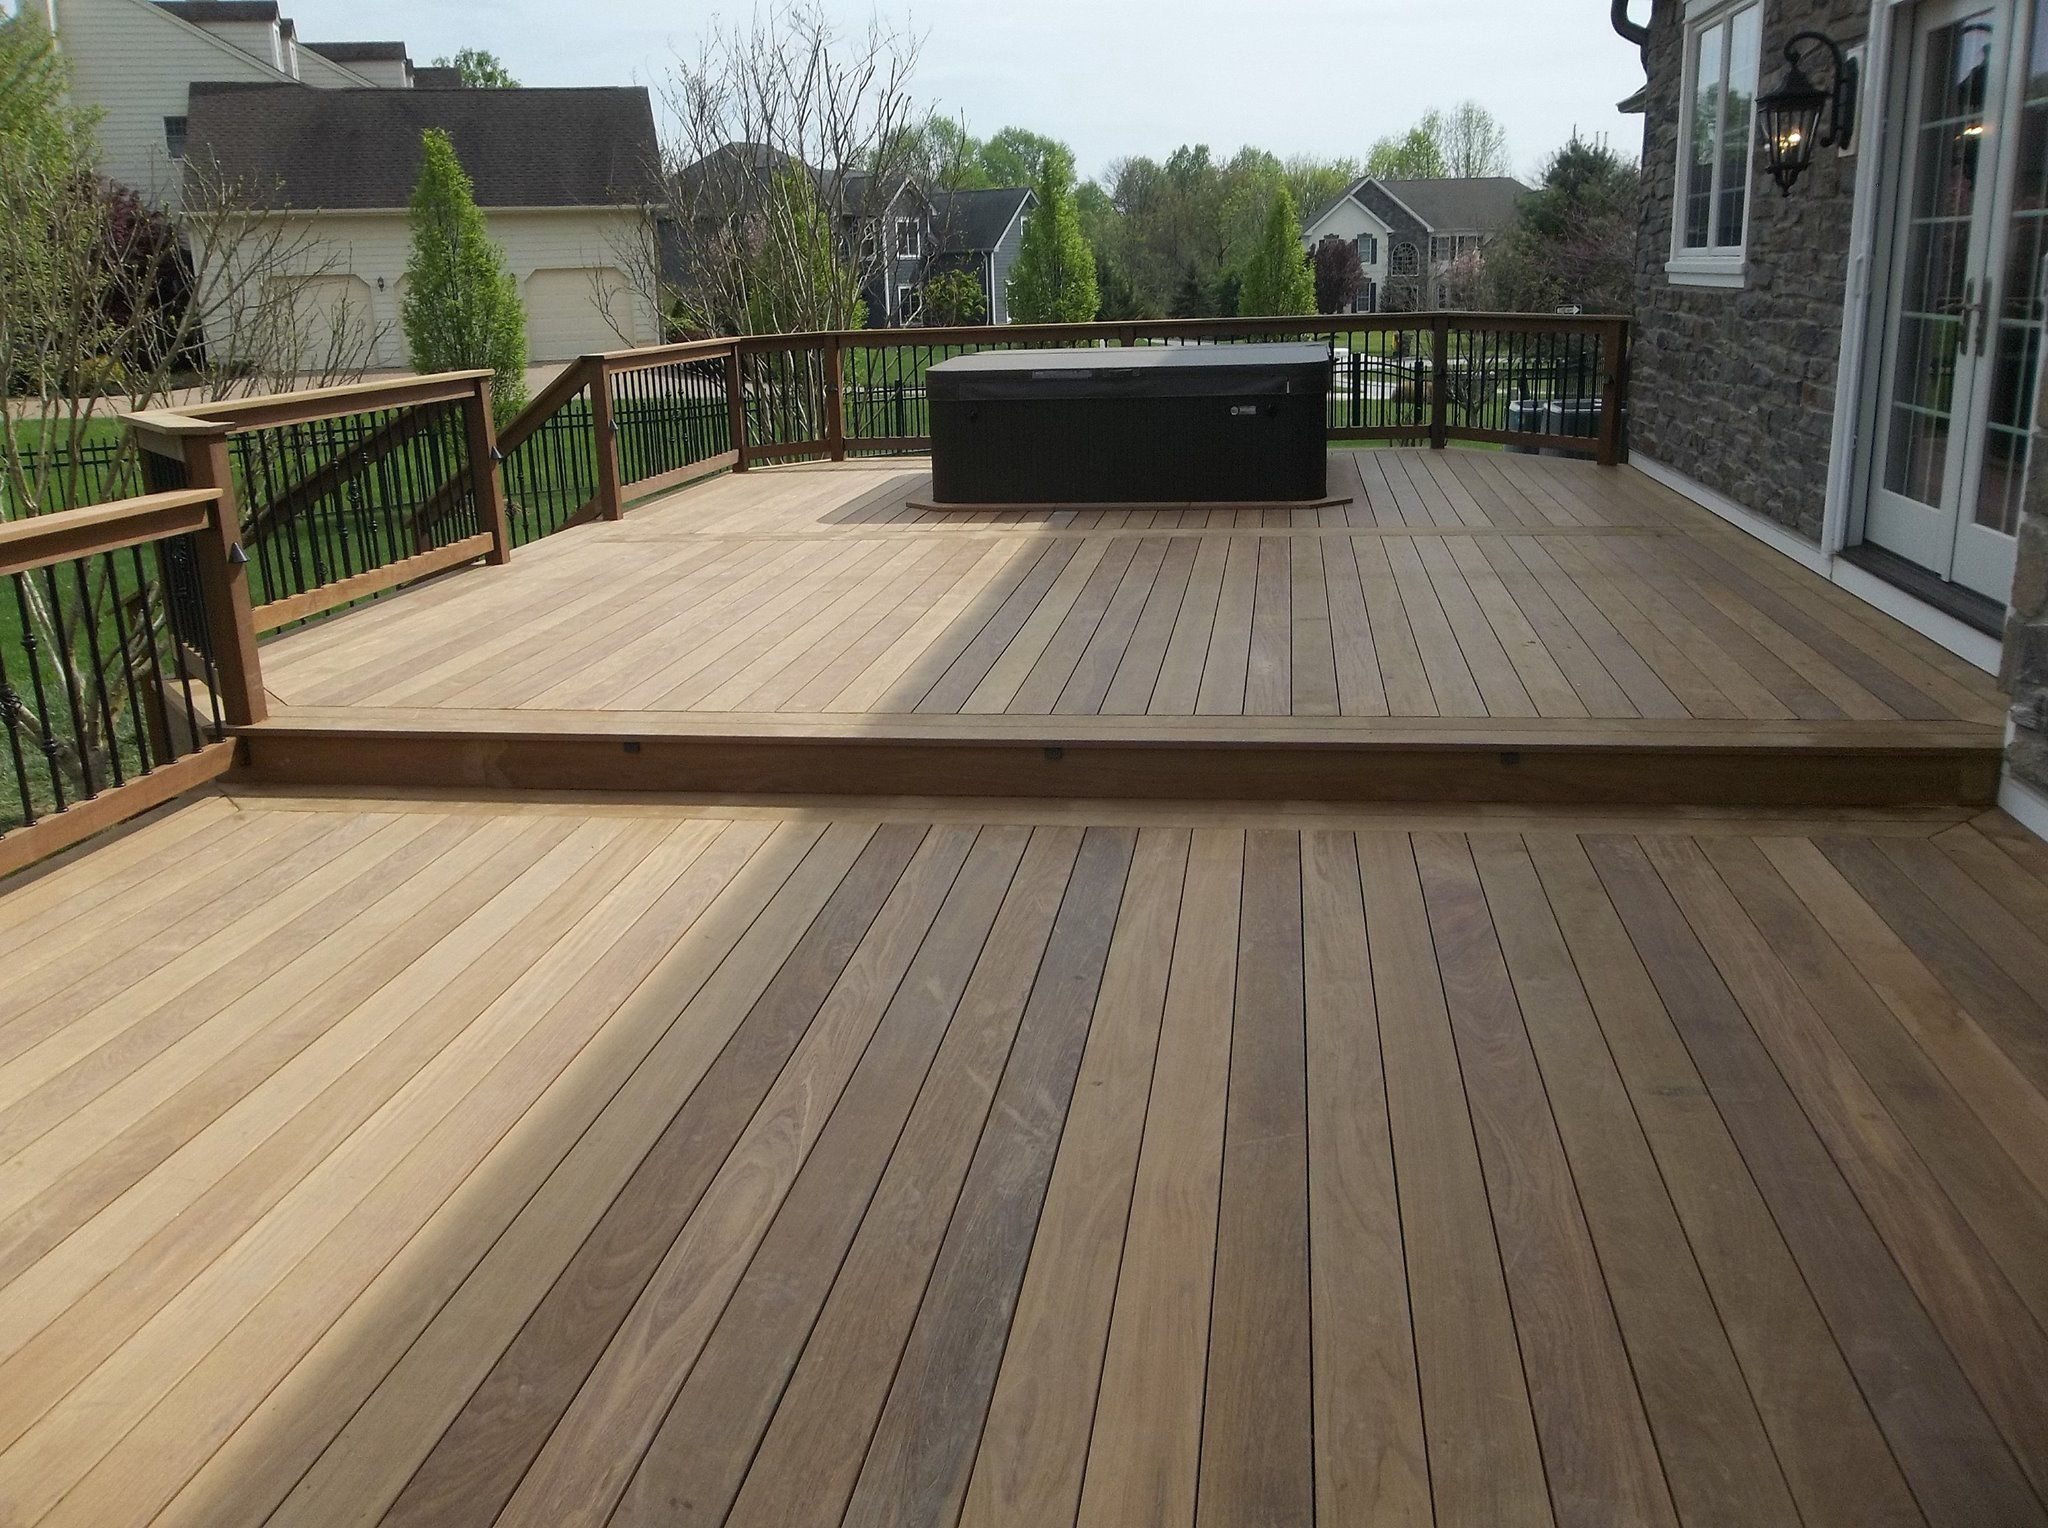 The Guys At Decks R Us Specialize In Building Decks Made Out Of